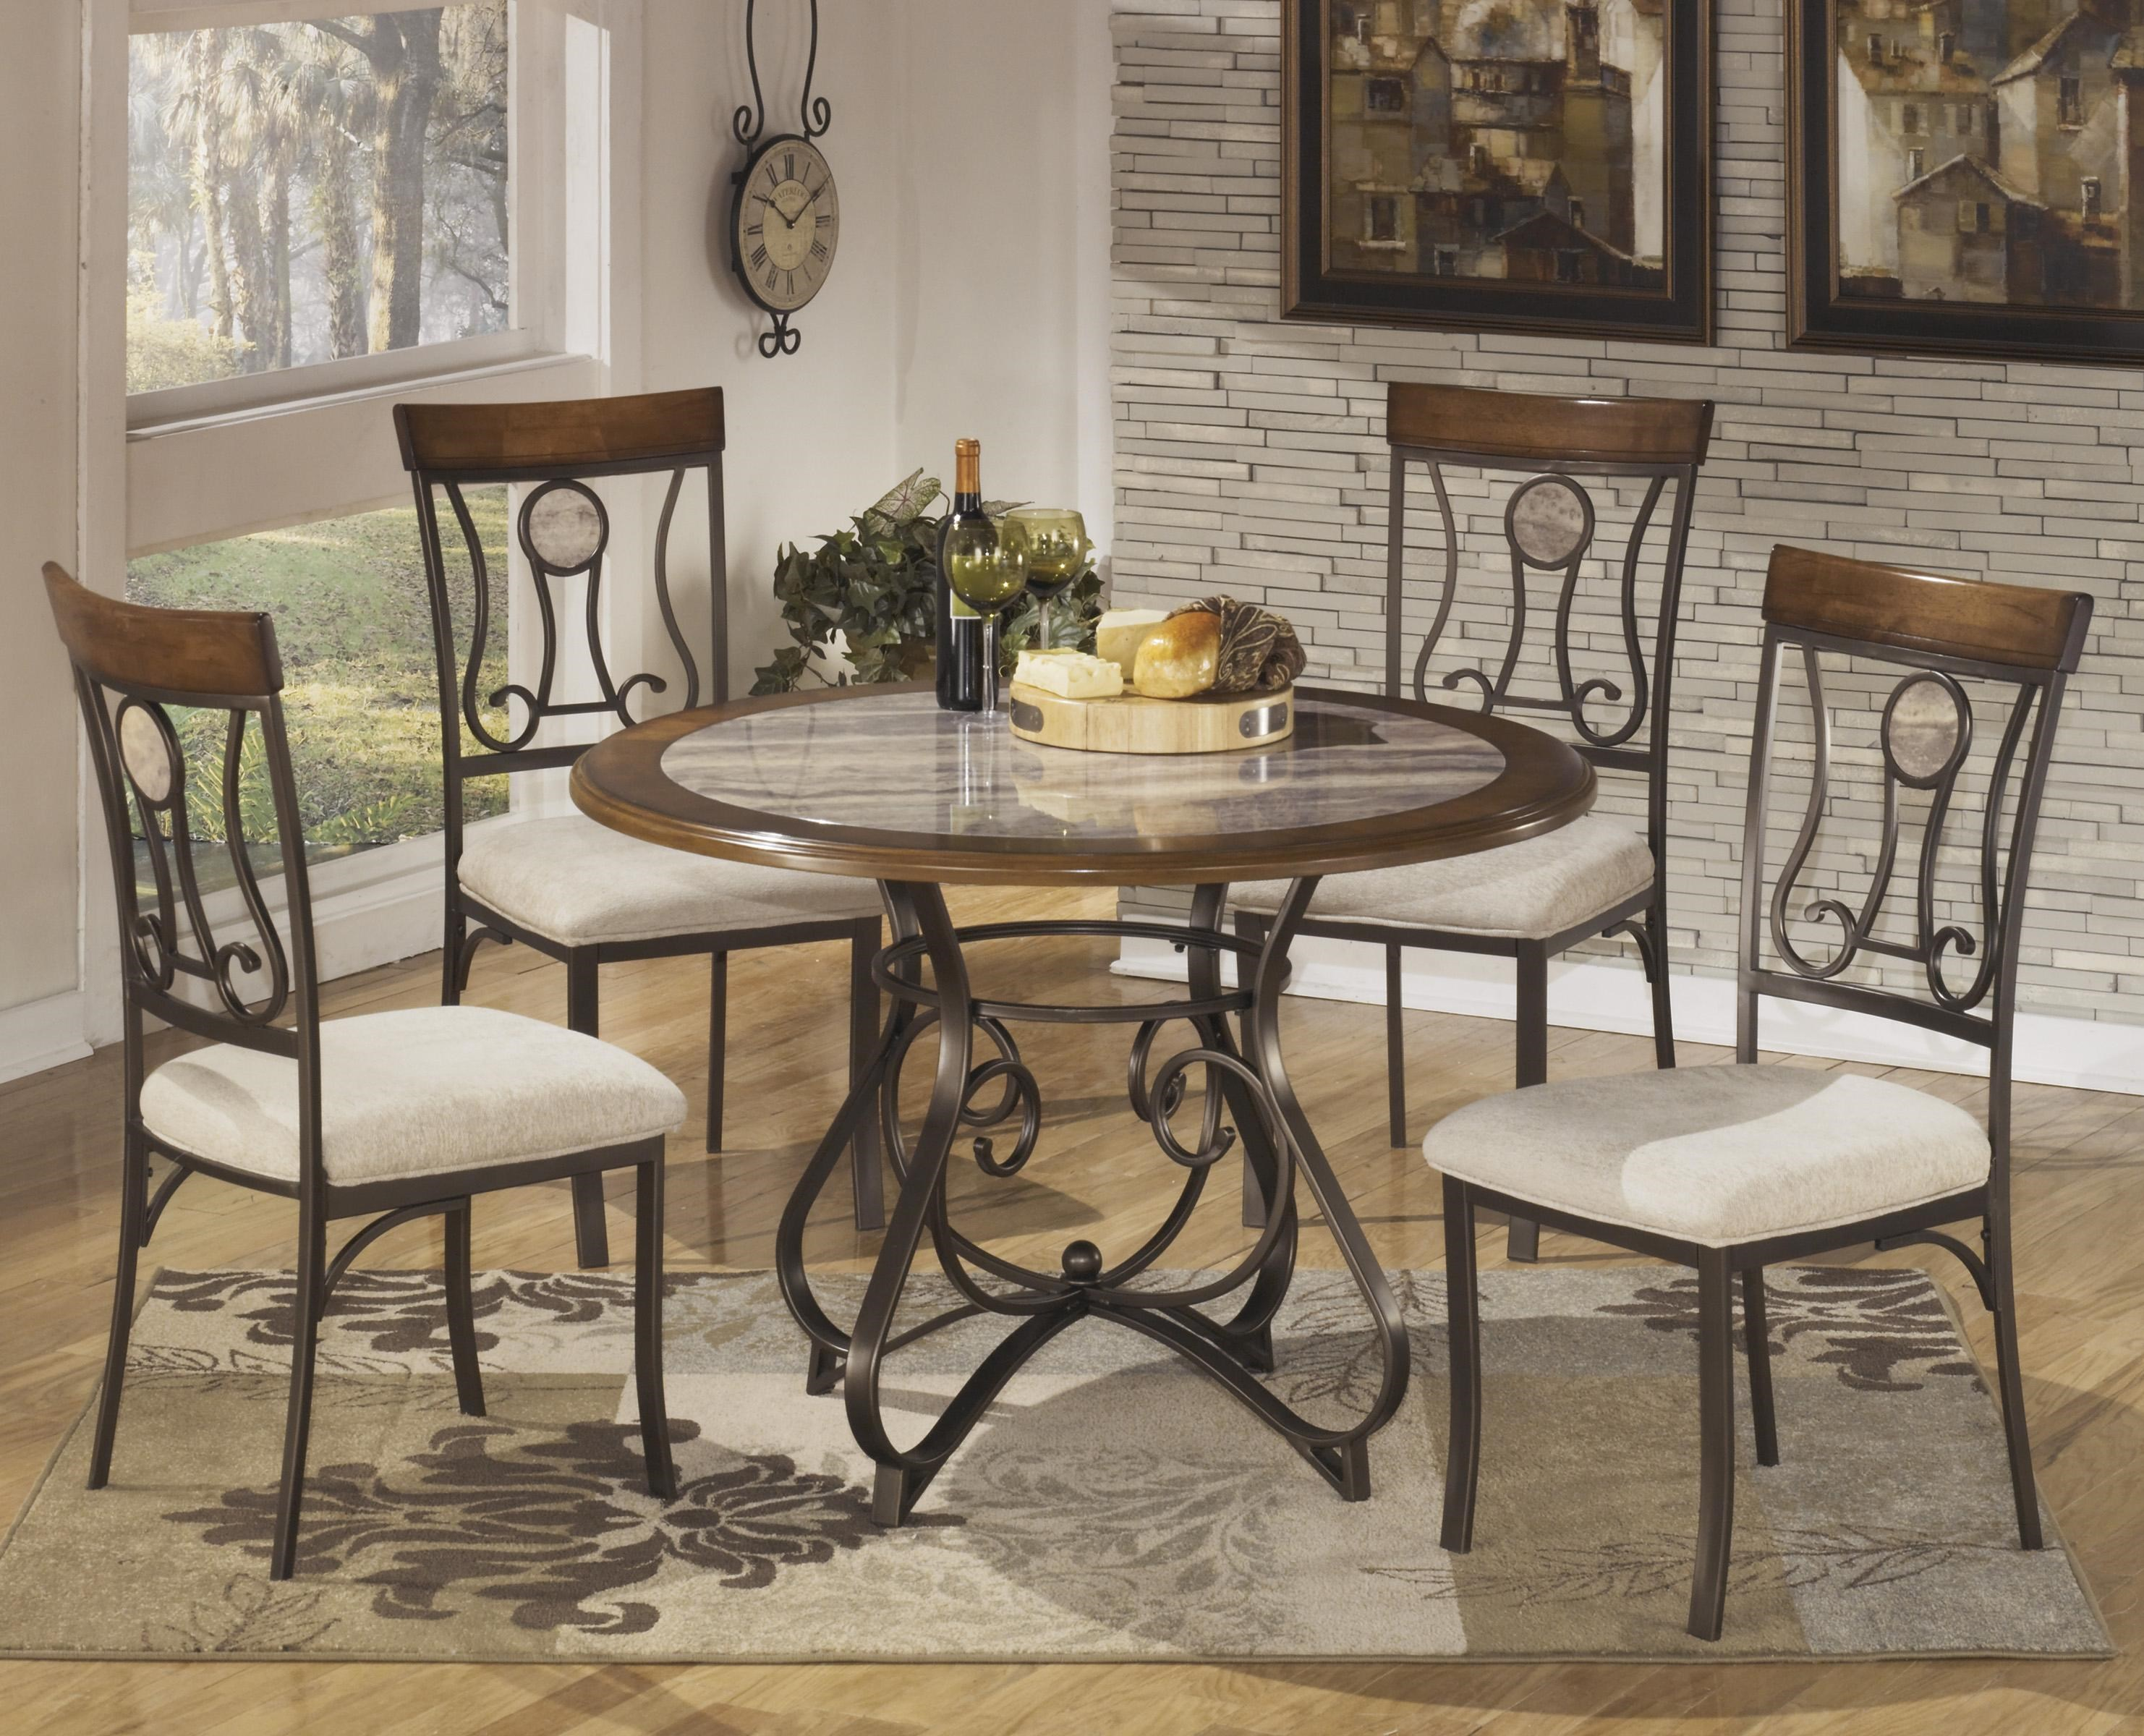 Ashley Furniture Round Dining Room Table Sets 500 x 500